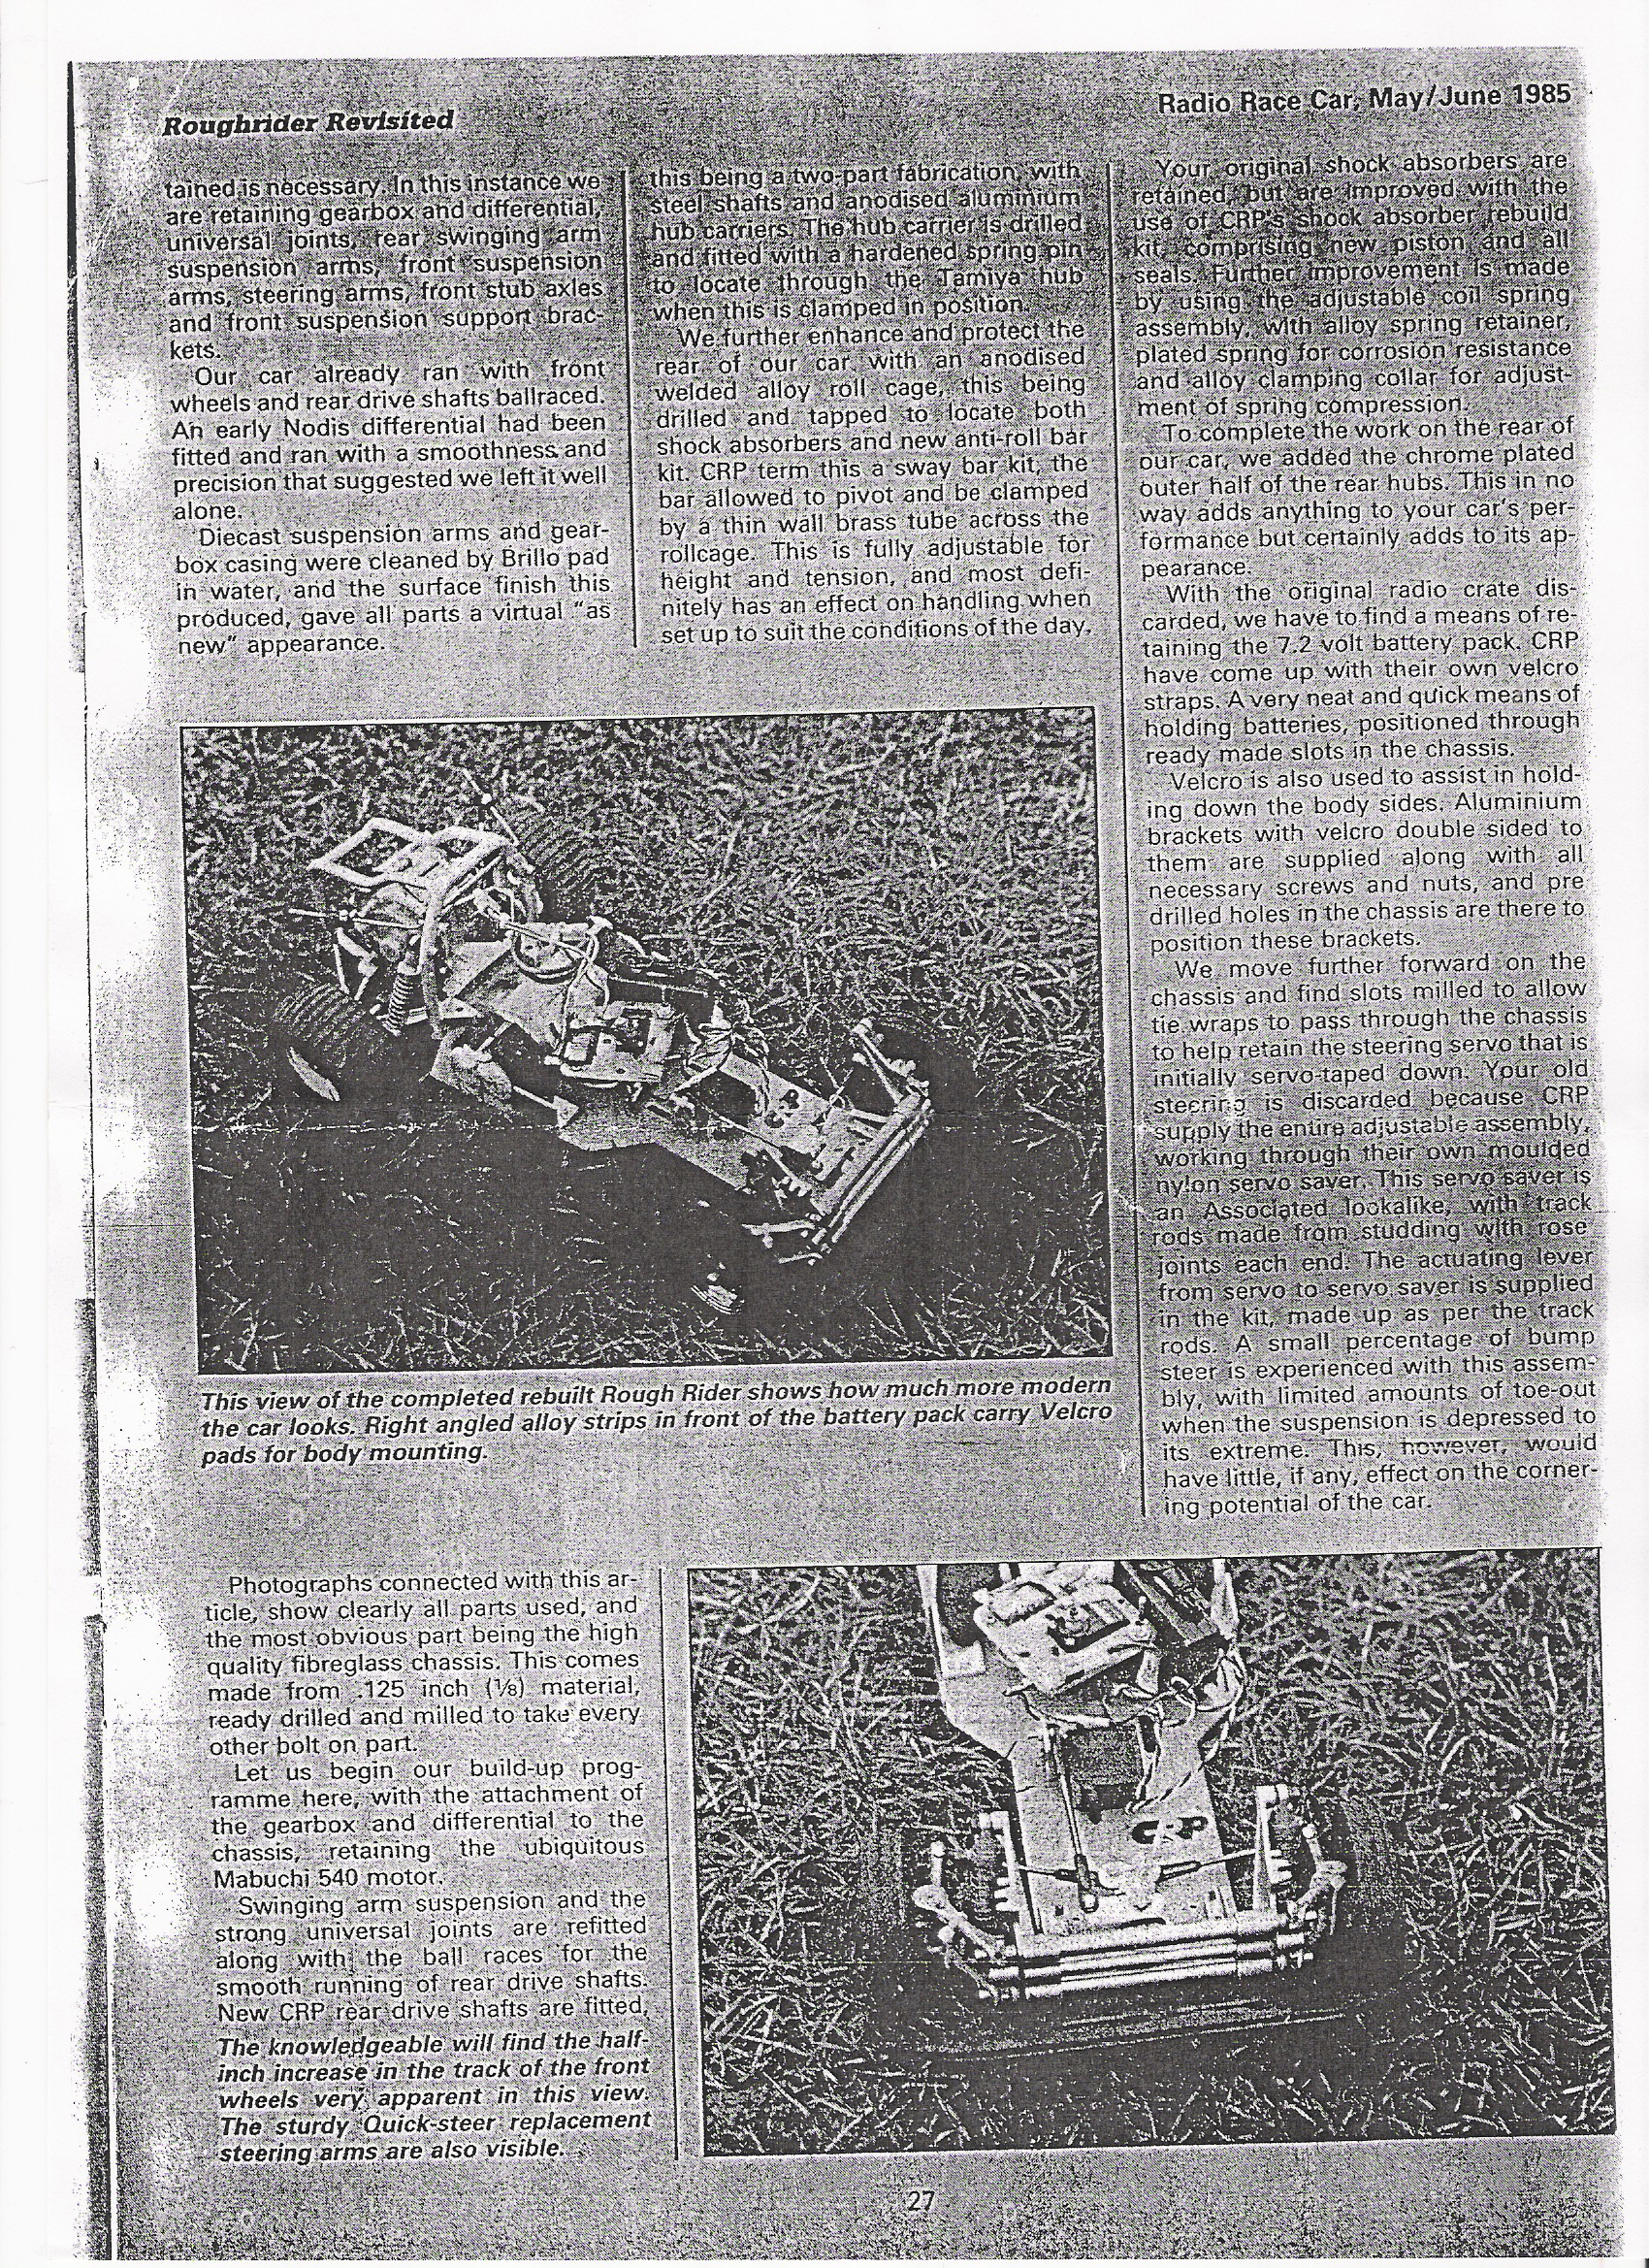 Radio Race Car's May/June 1985 'Rough Rider Revisited' article